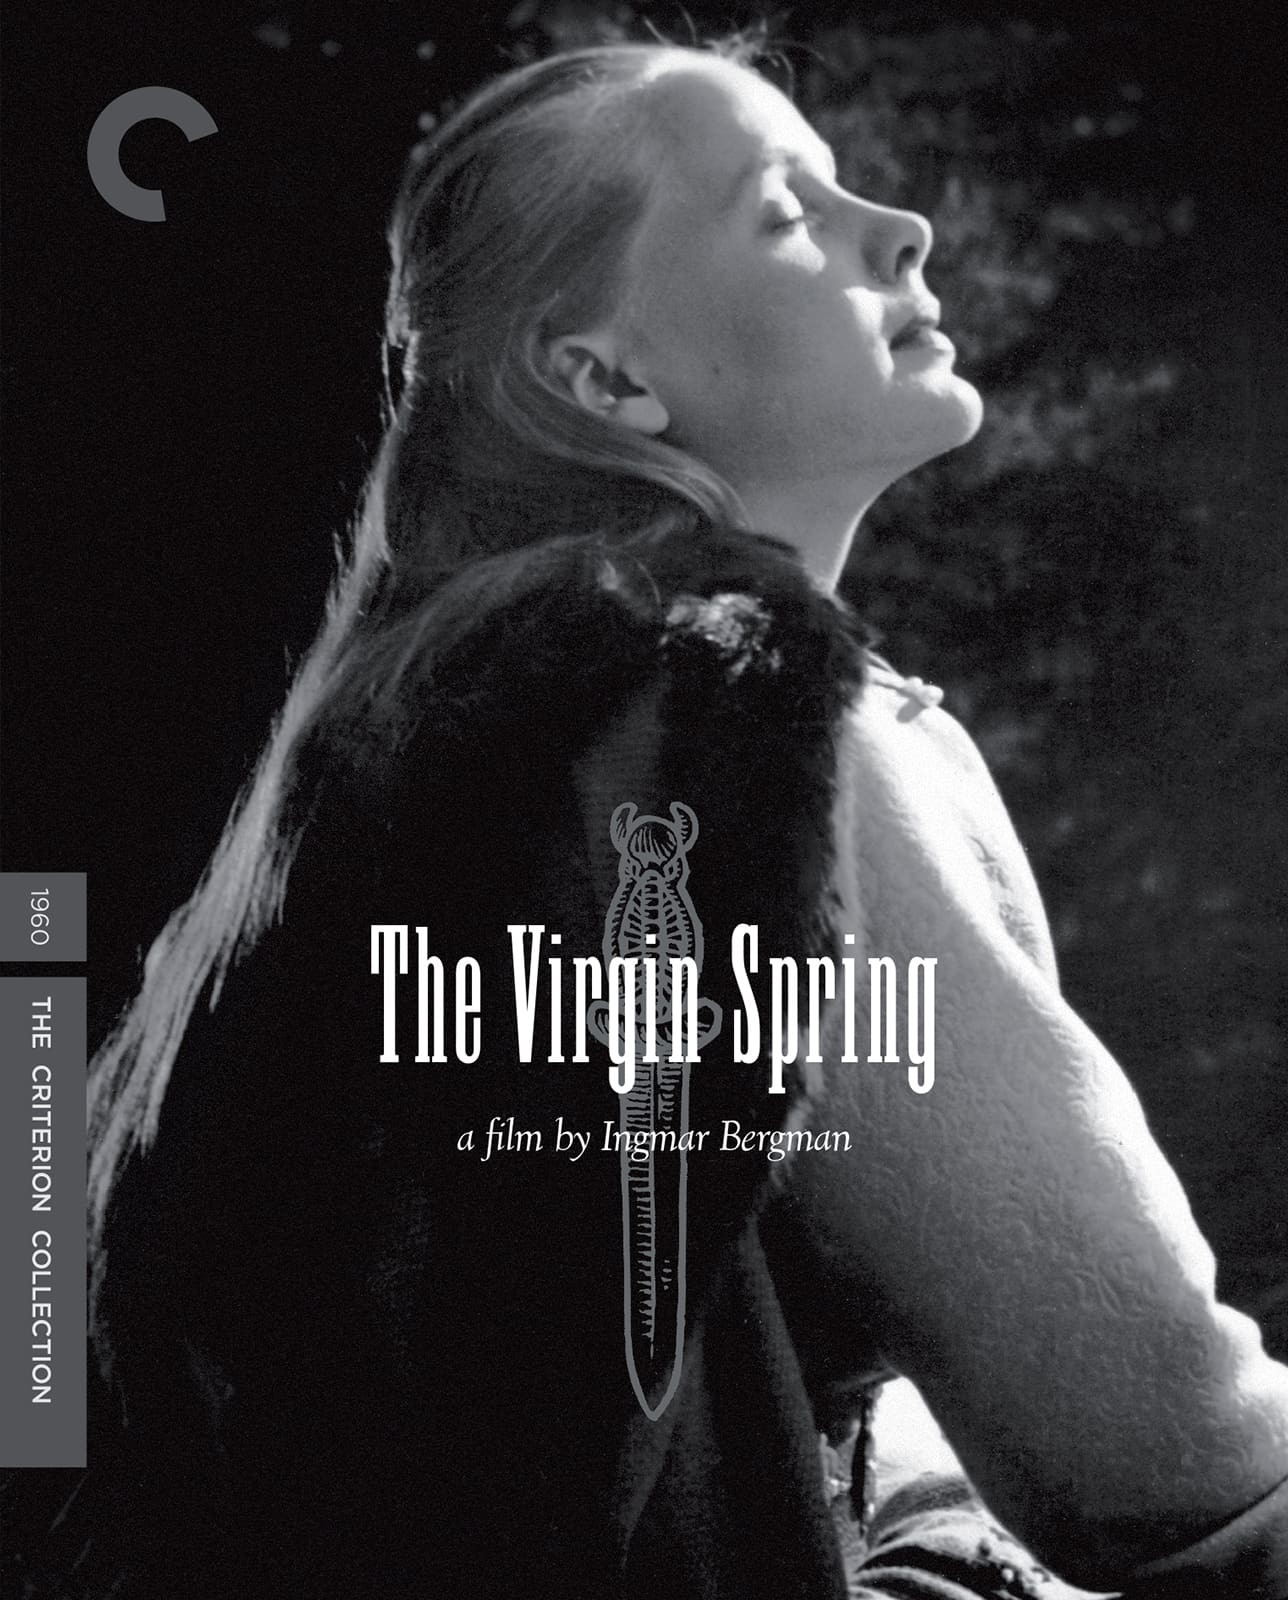 The Virgin Spring (1960) | The Criterion Collection